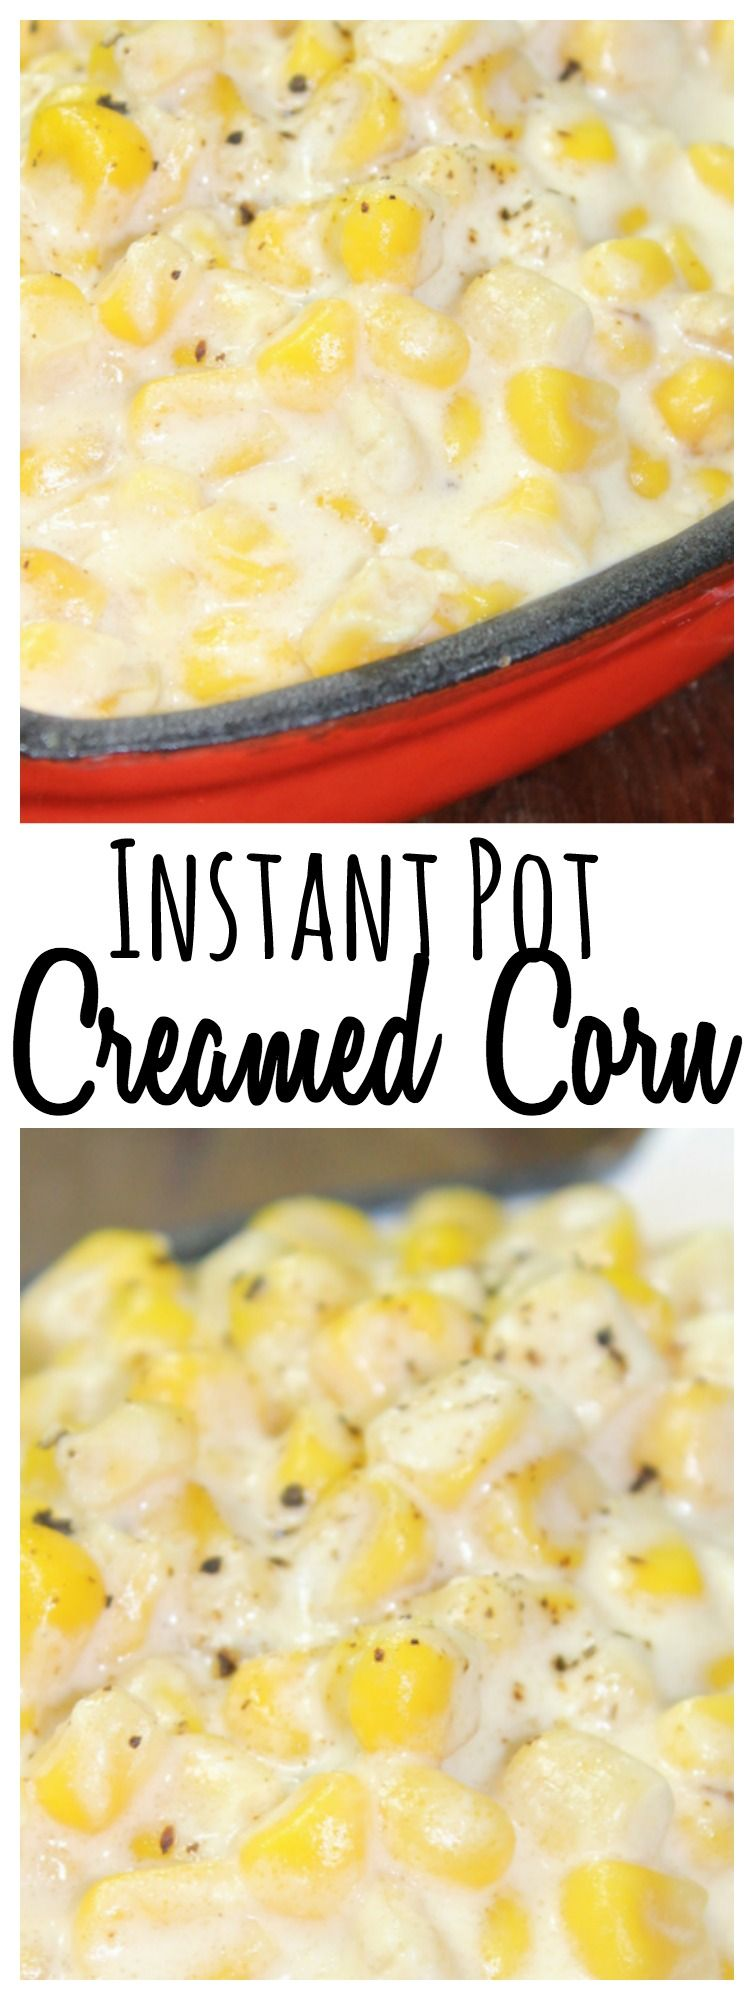 Cream corn only takes a few minutes to cook up in the Instant Pot!